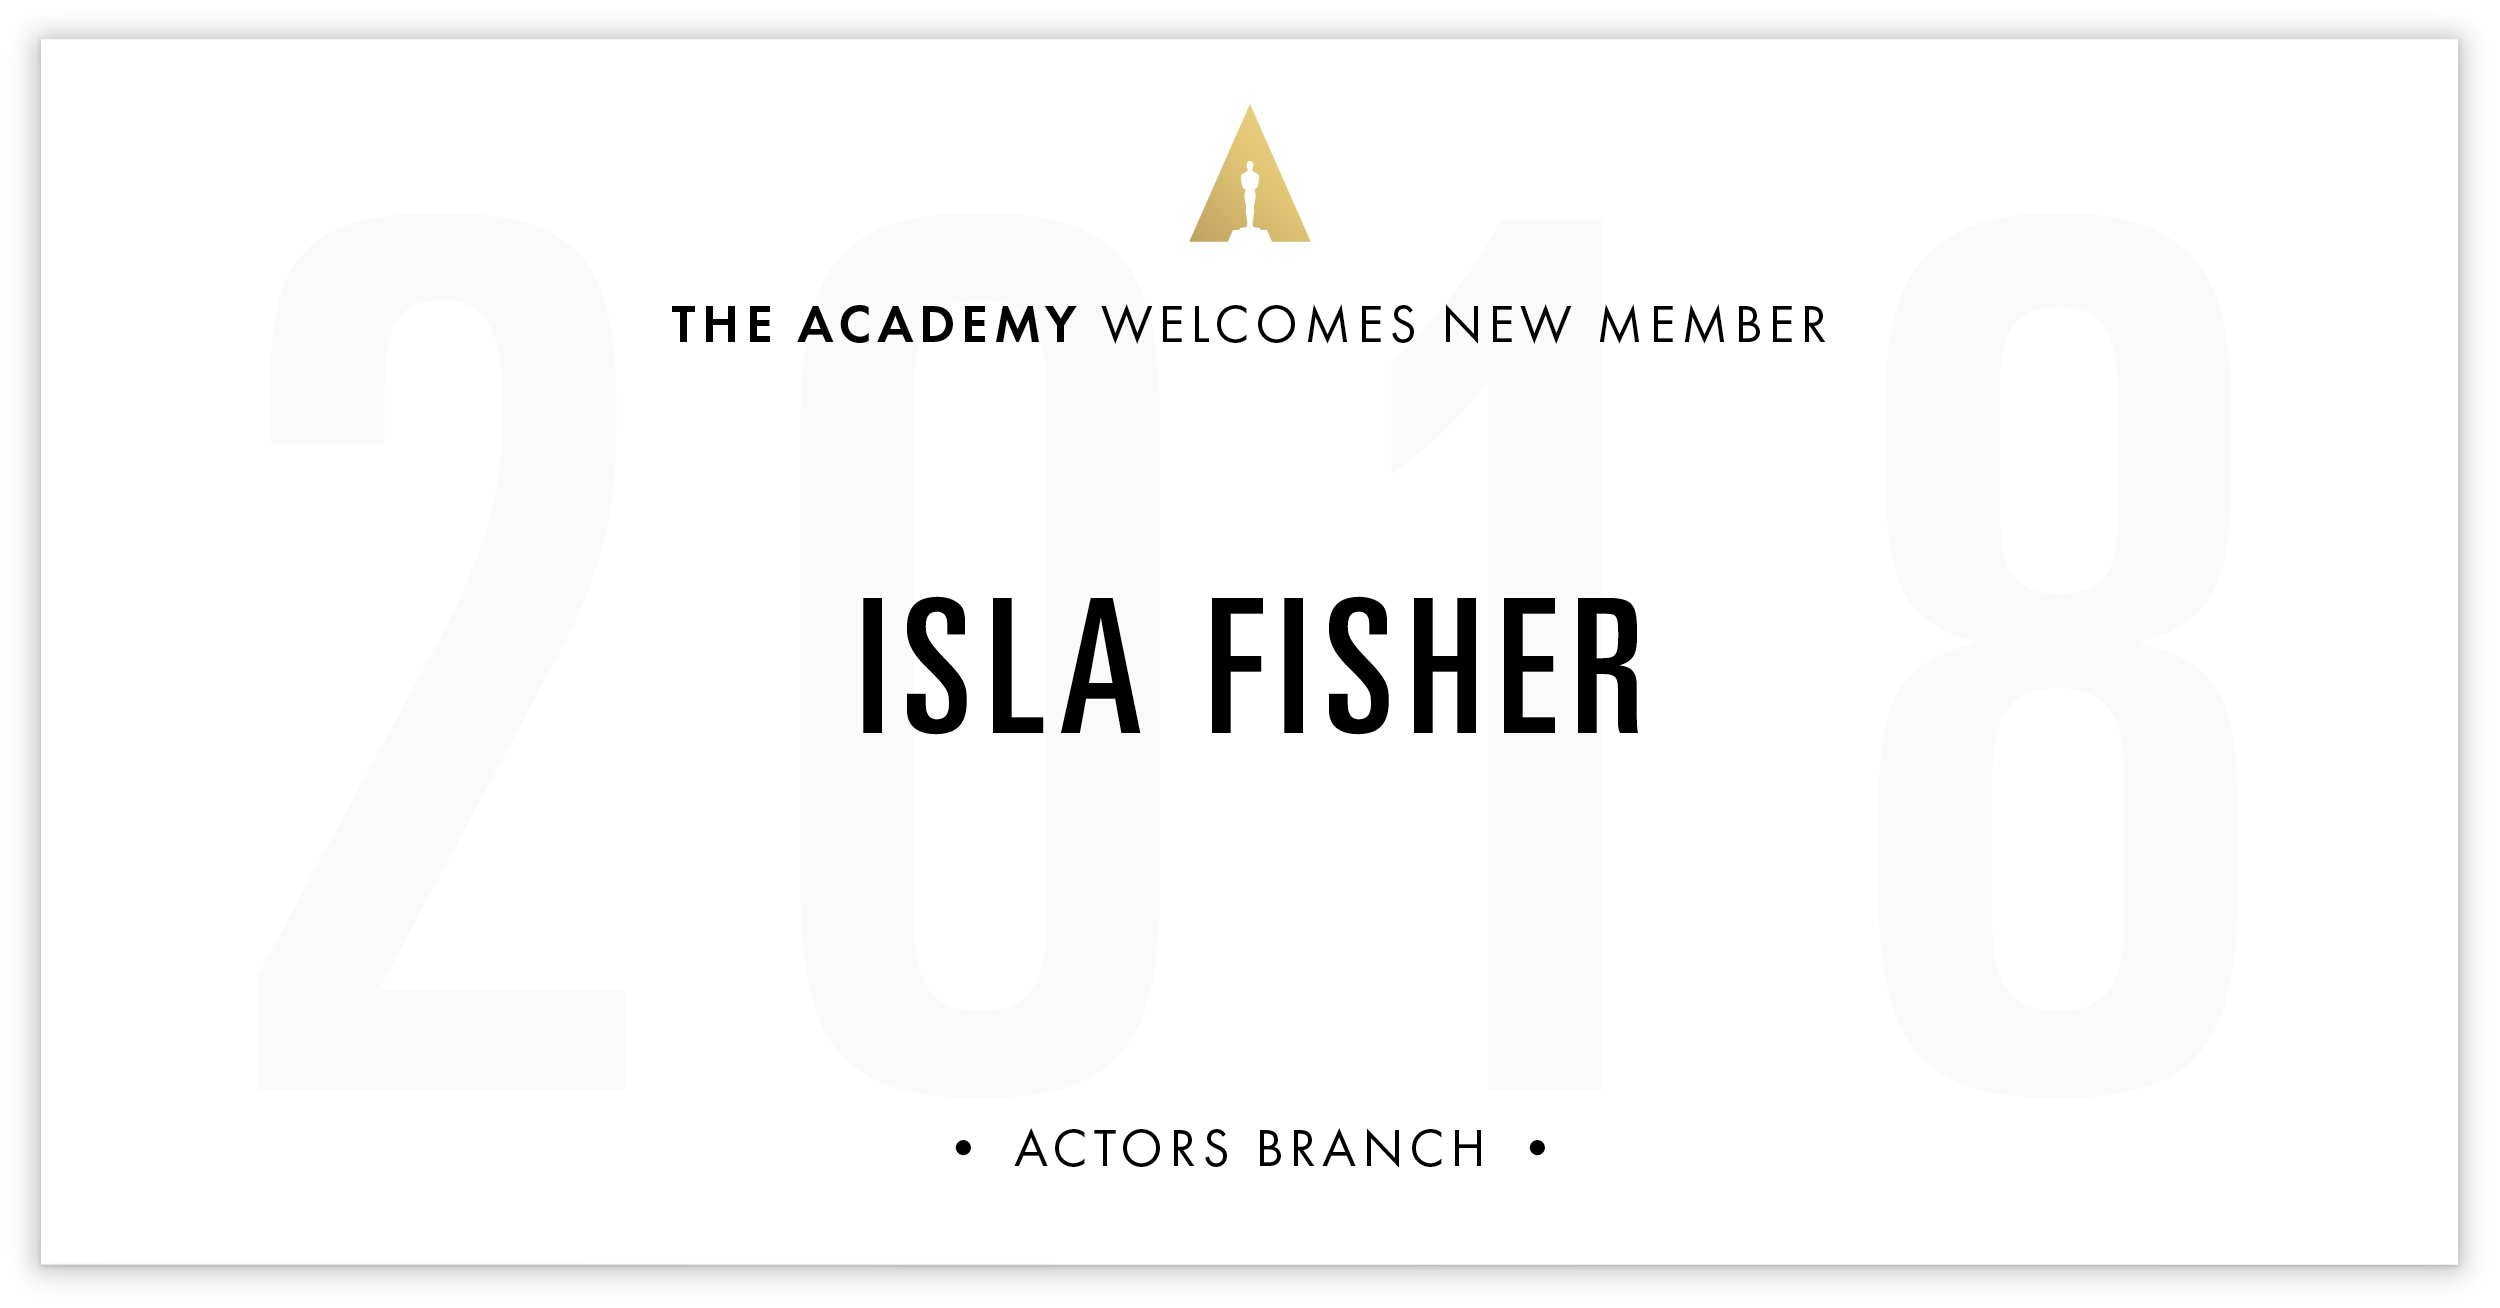 Isla Fisher is invited!